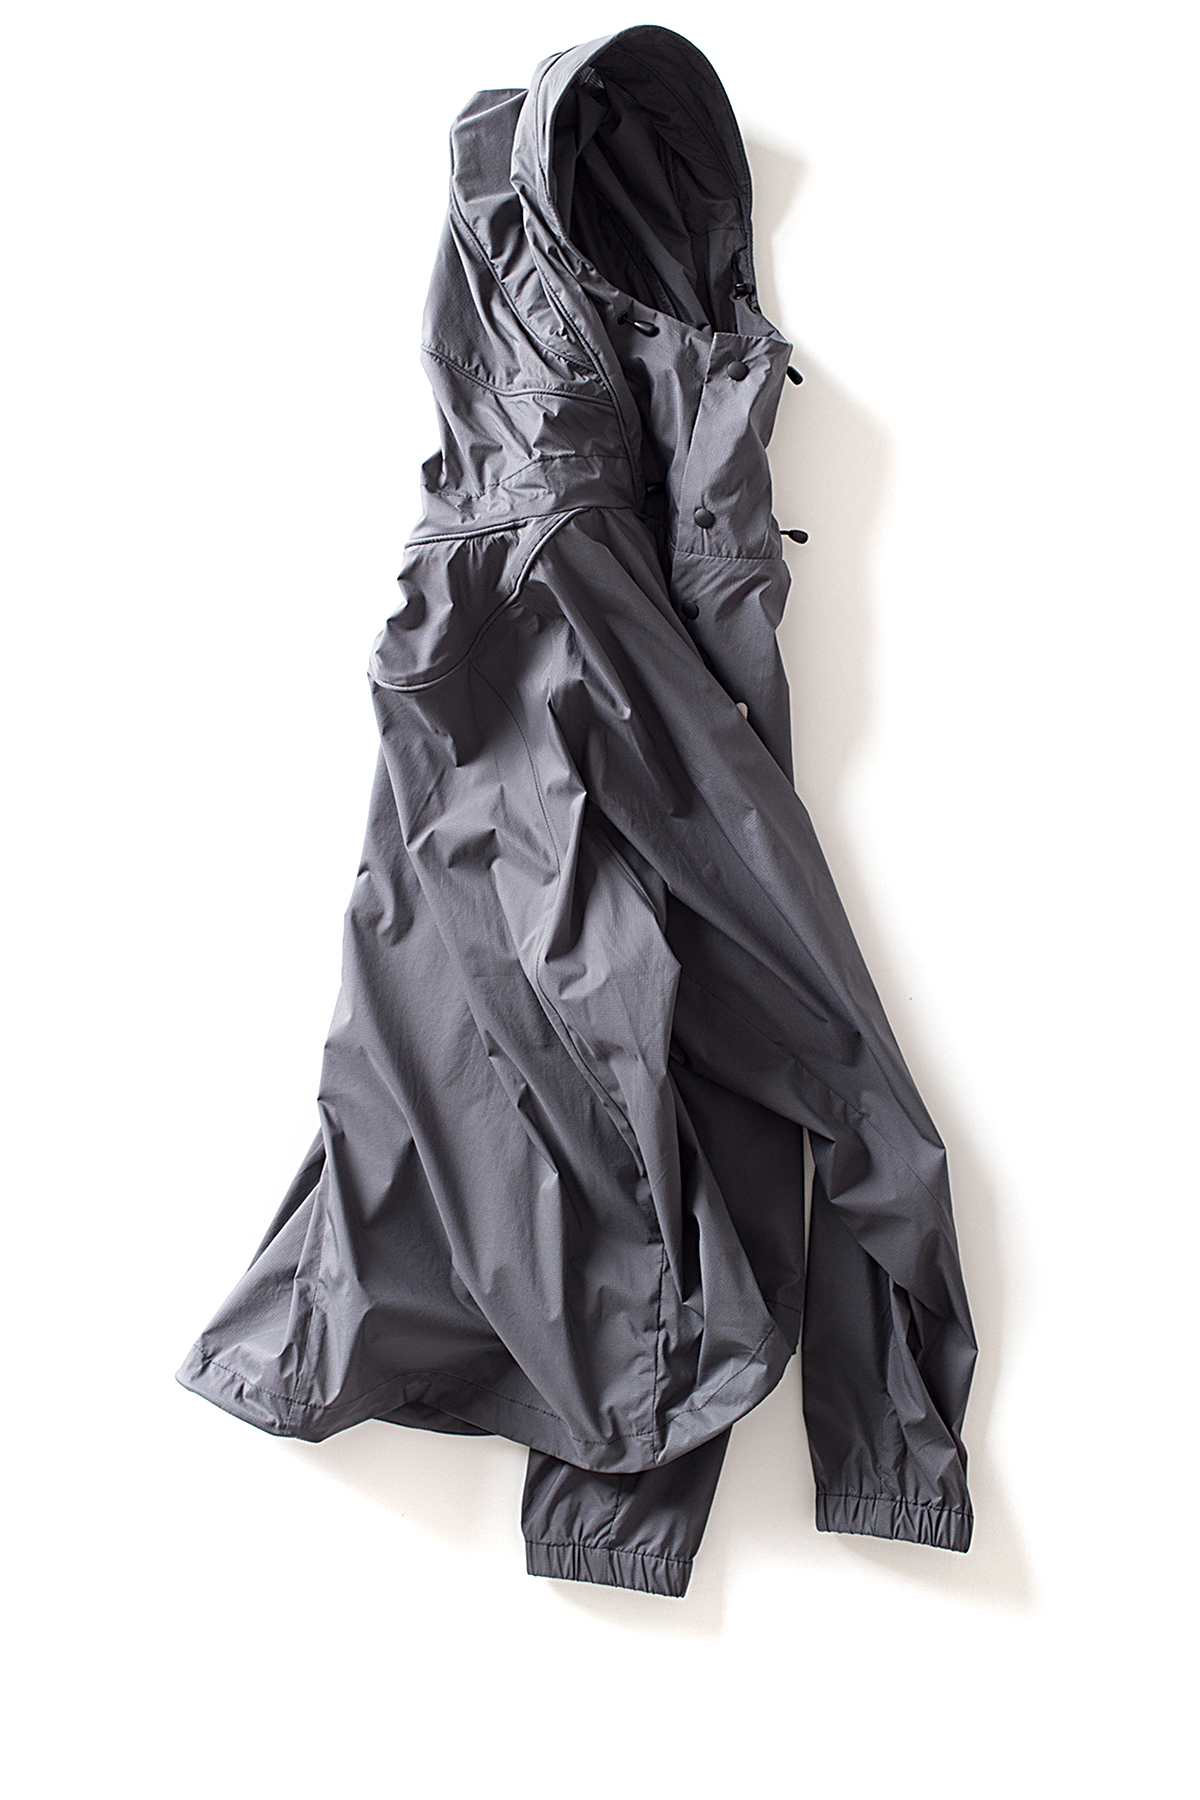 alk phenix : Dome Poncho / EPIC (Charcoal Gray)